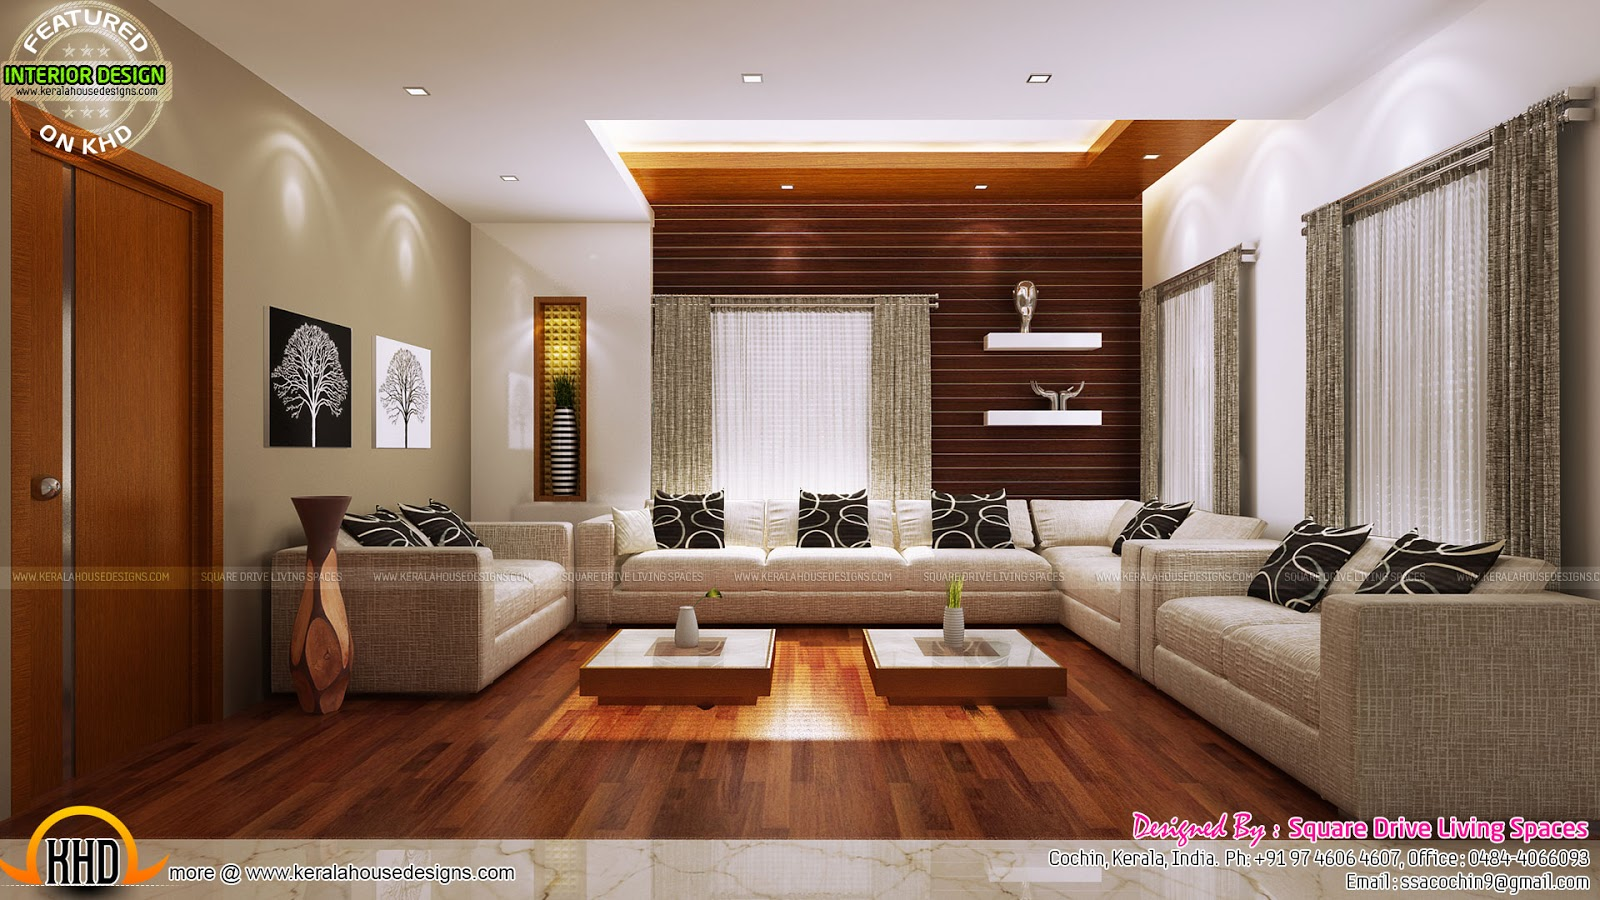 excellent kerala interior design kerala home design and floor plans